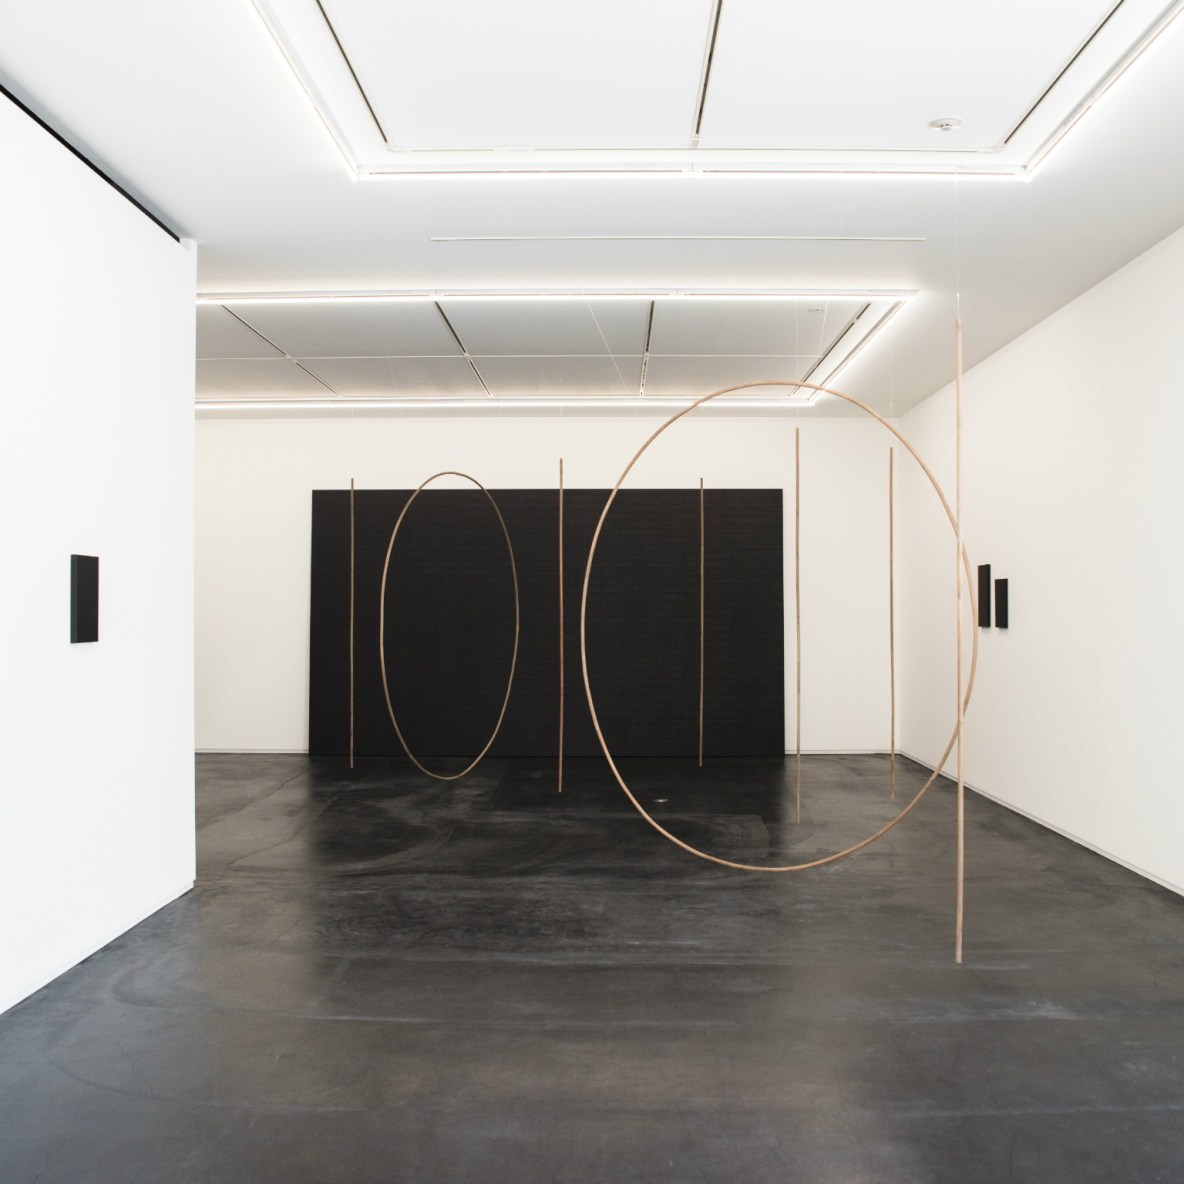 Well-known contemporary art gallery focusing on photography